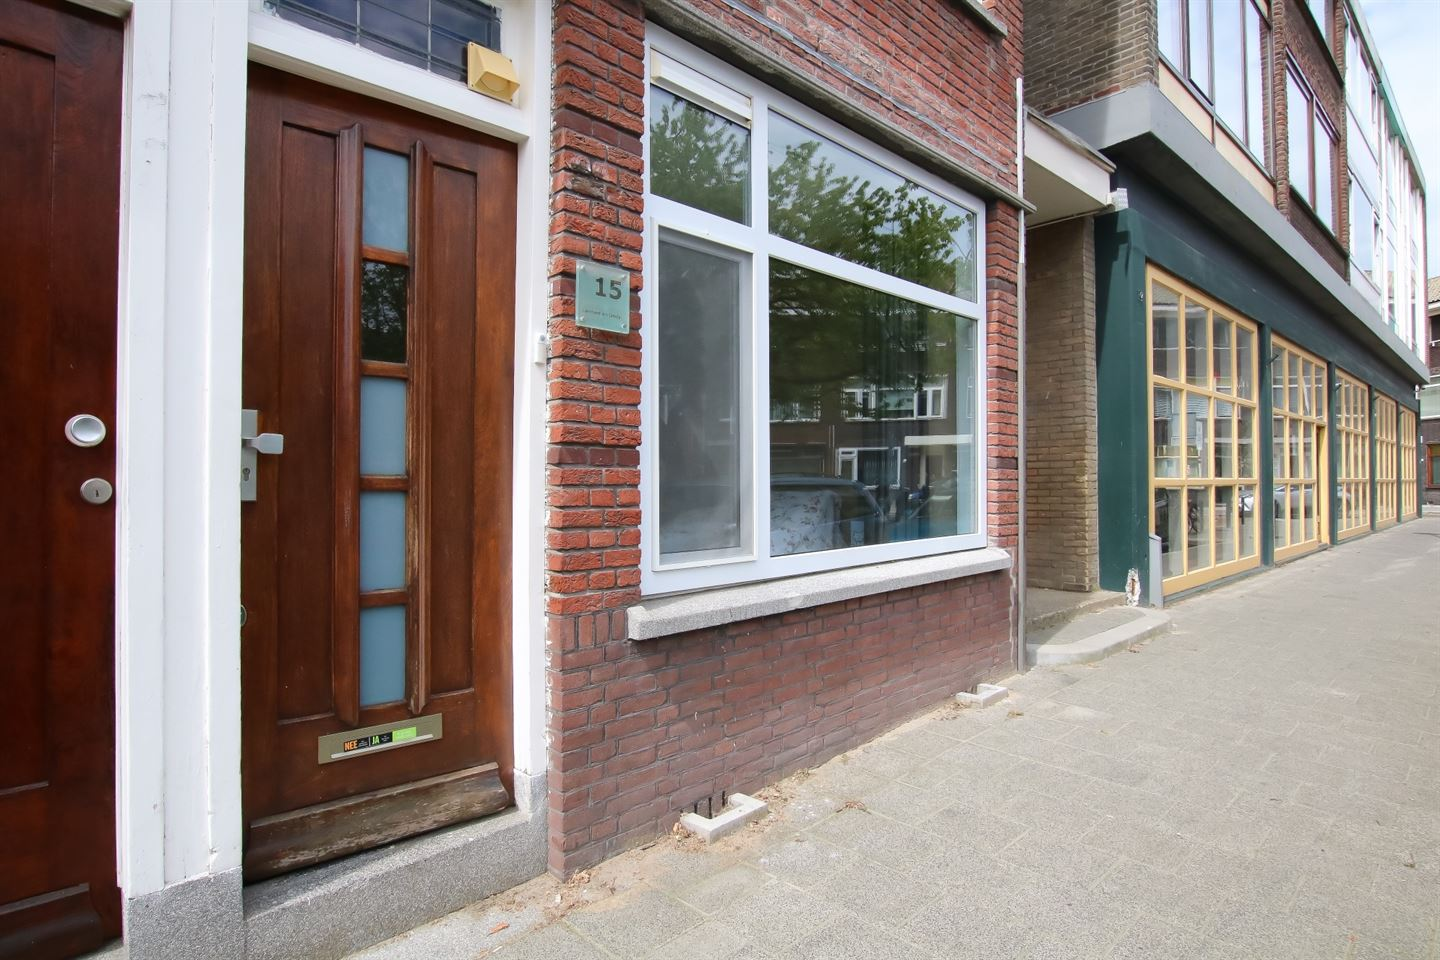 View photo 2 of Bachstraat 15